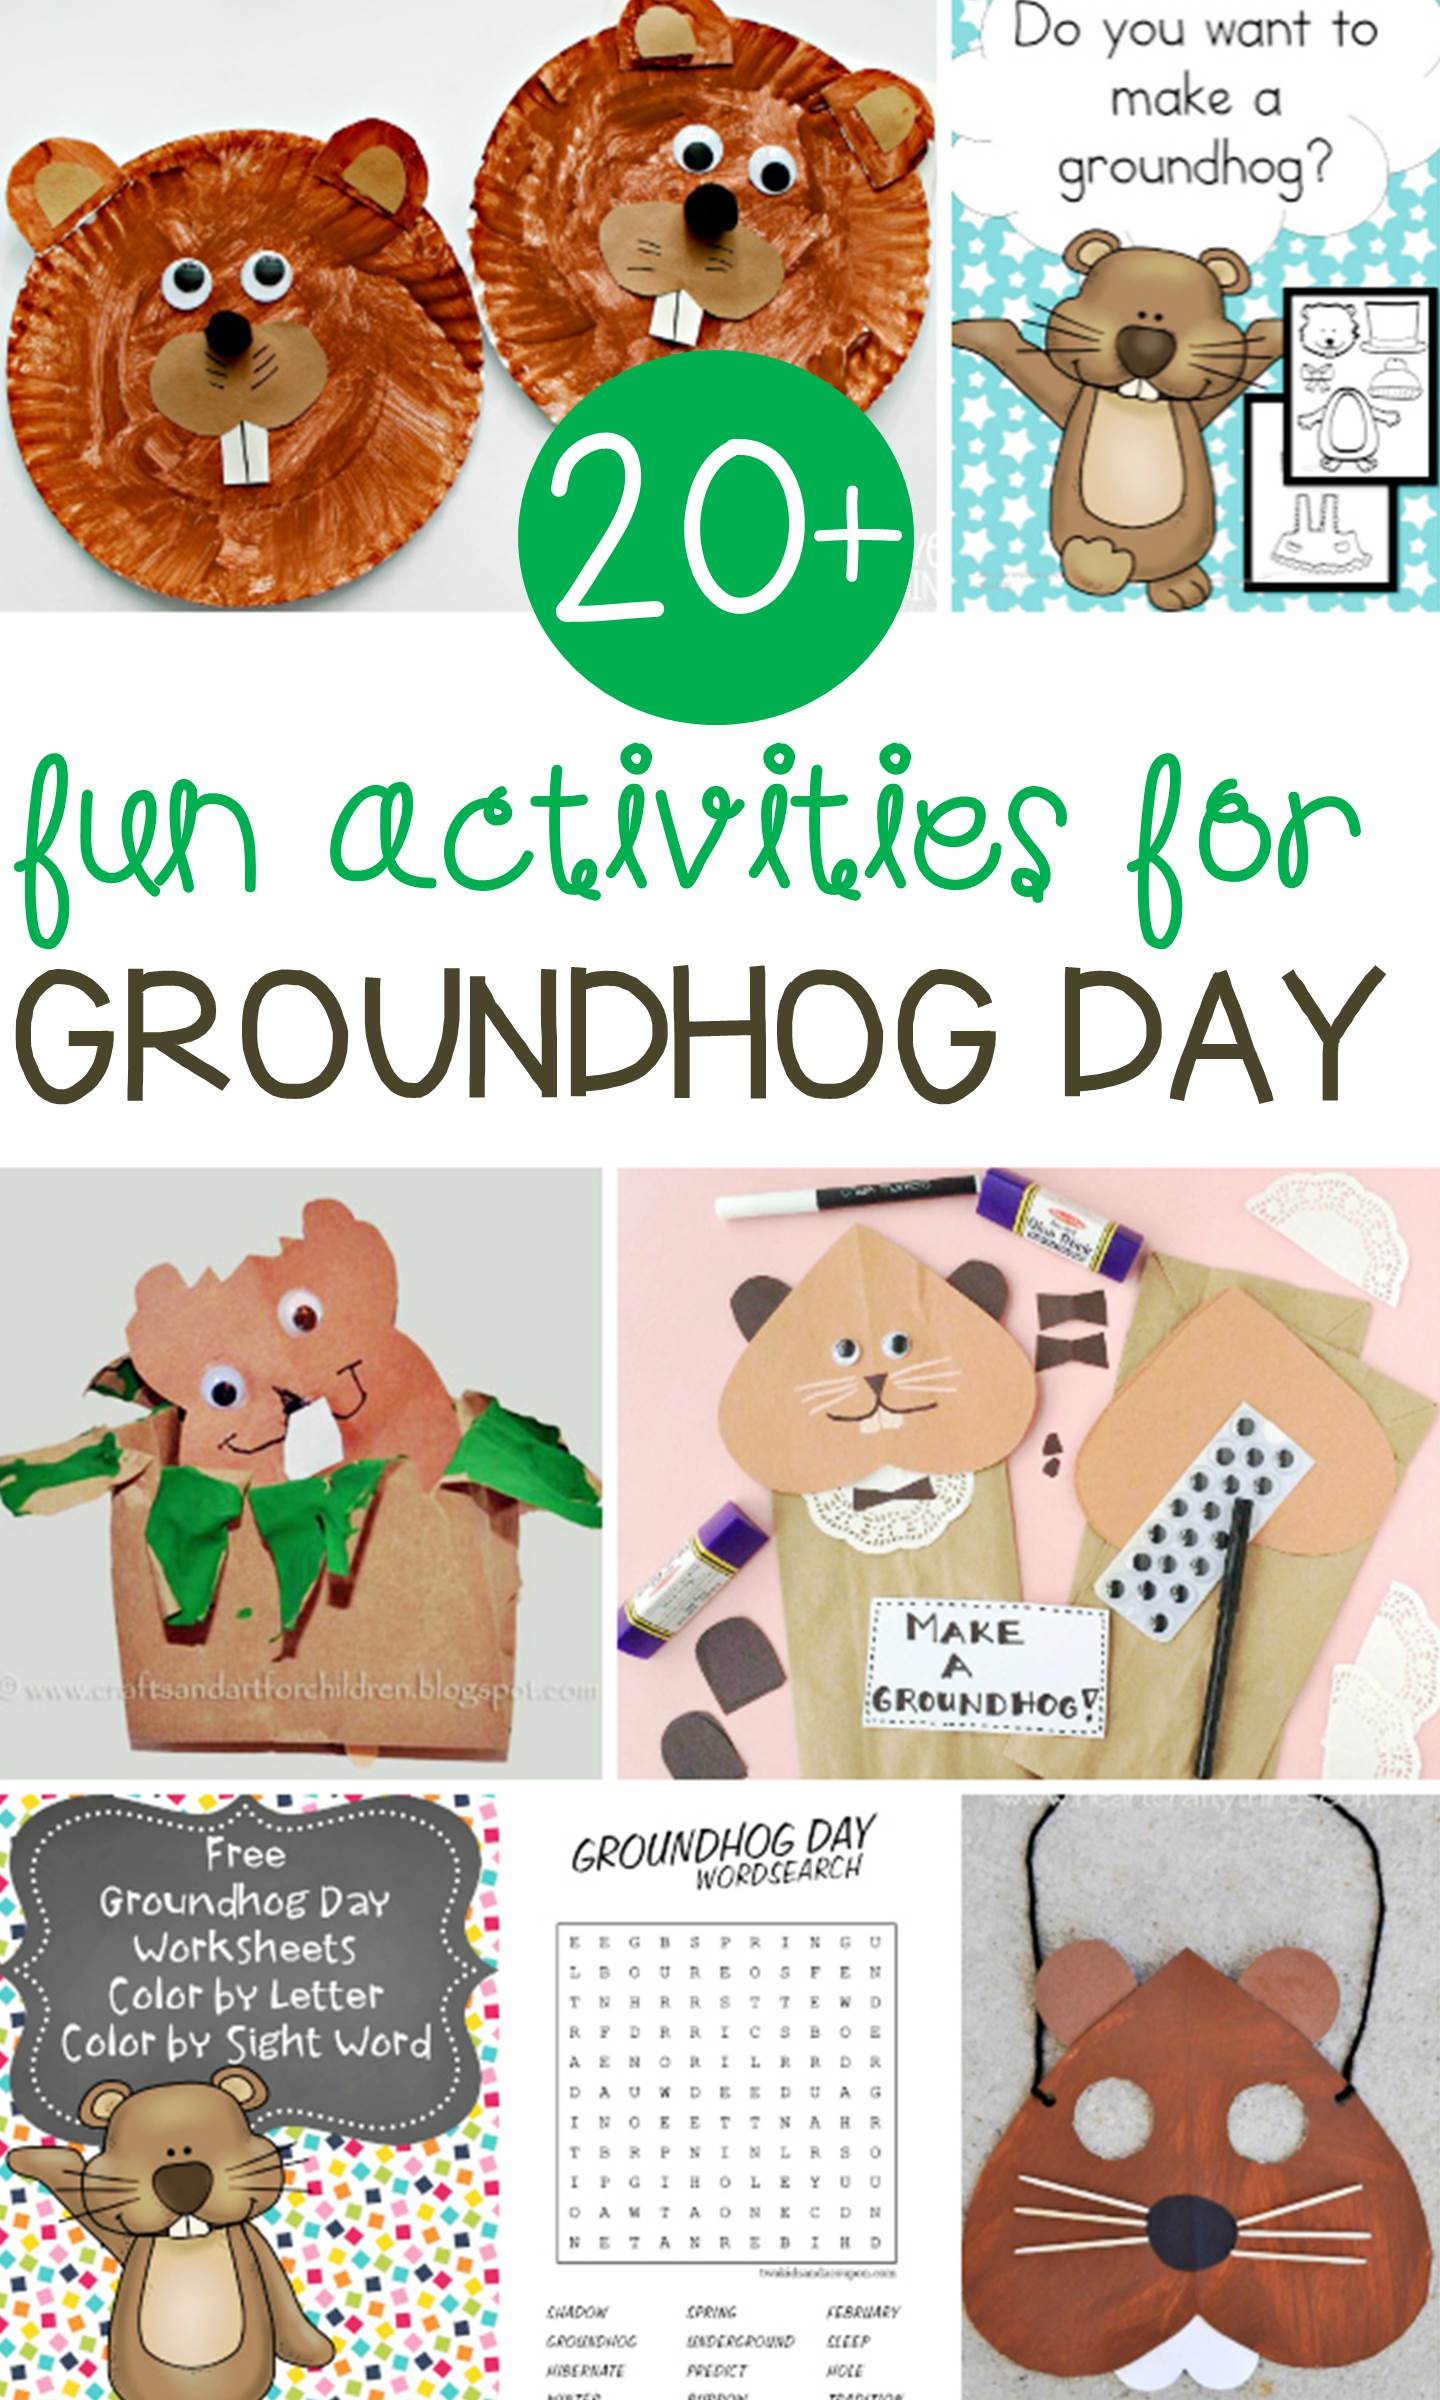 Fun groundhog day activities for kids for Groundhog day crafts for preschoolers